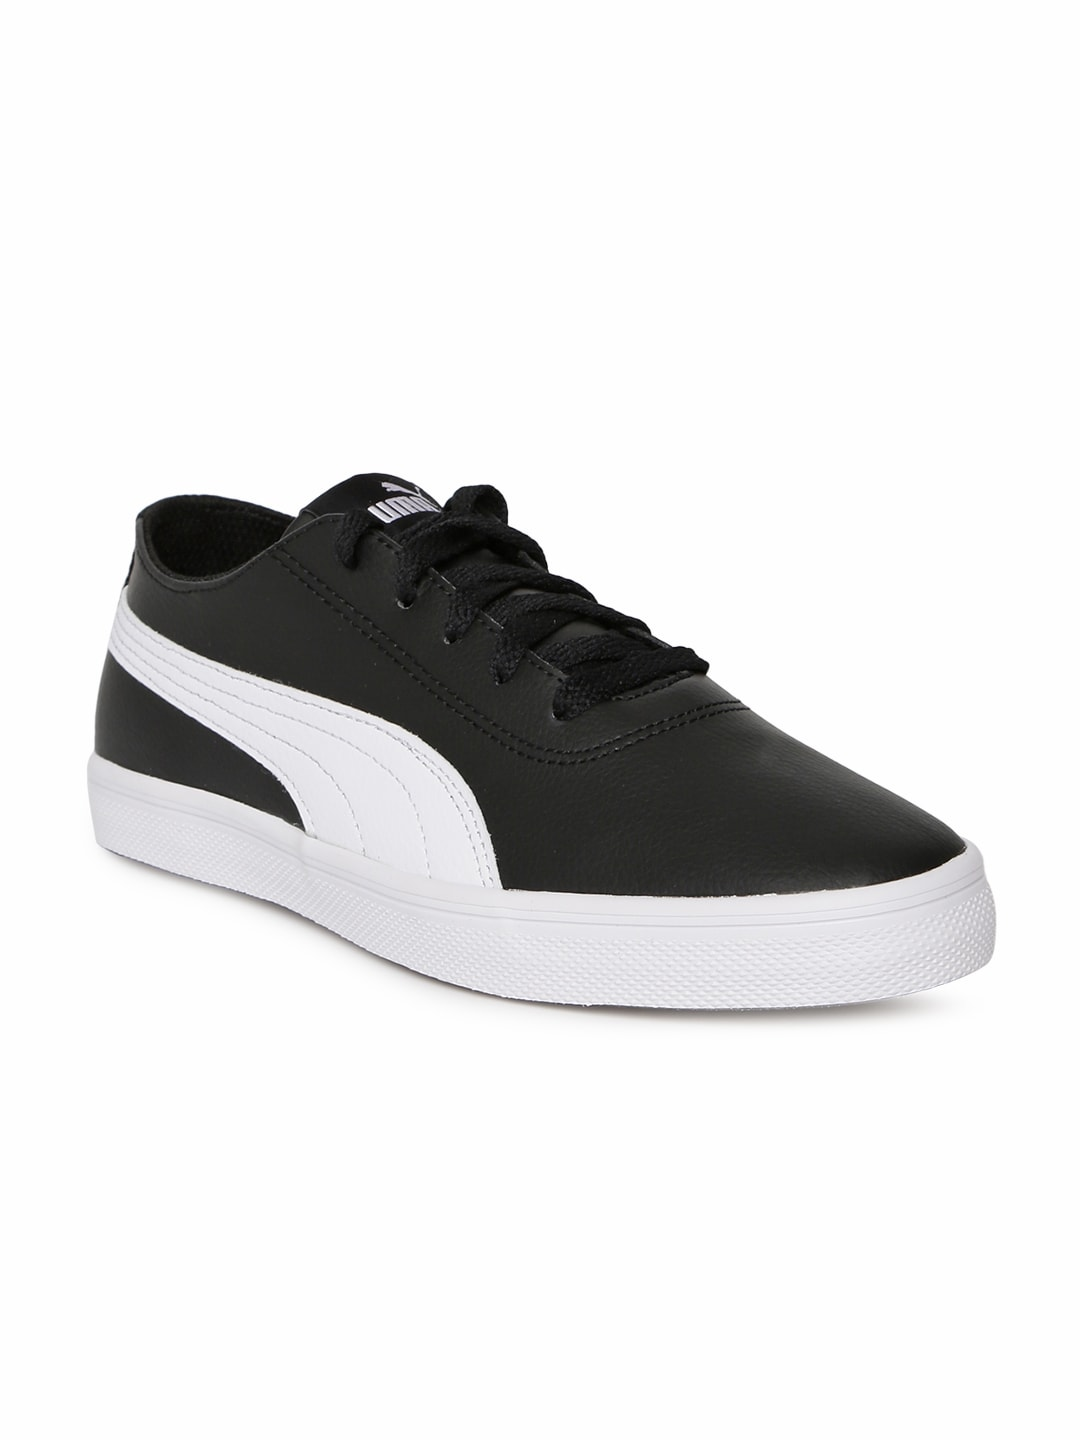 Puma Sneakers - Buy Puma Sneakers Online in India f1842a195